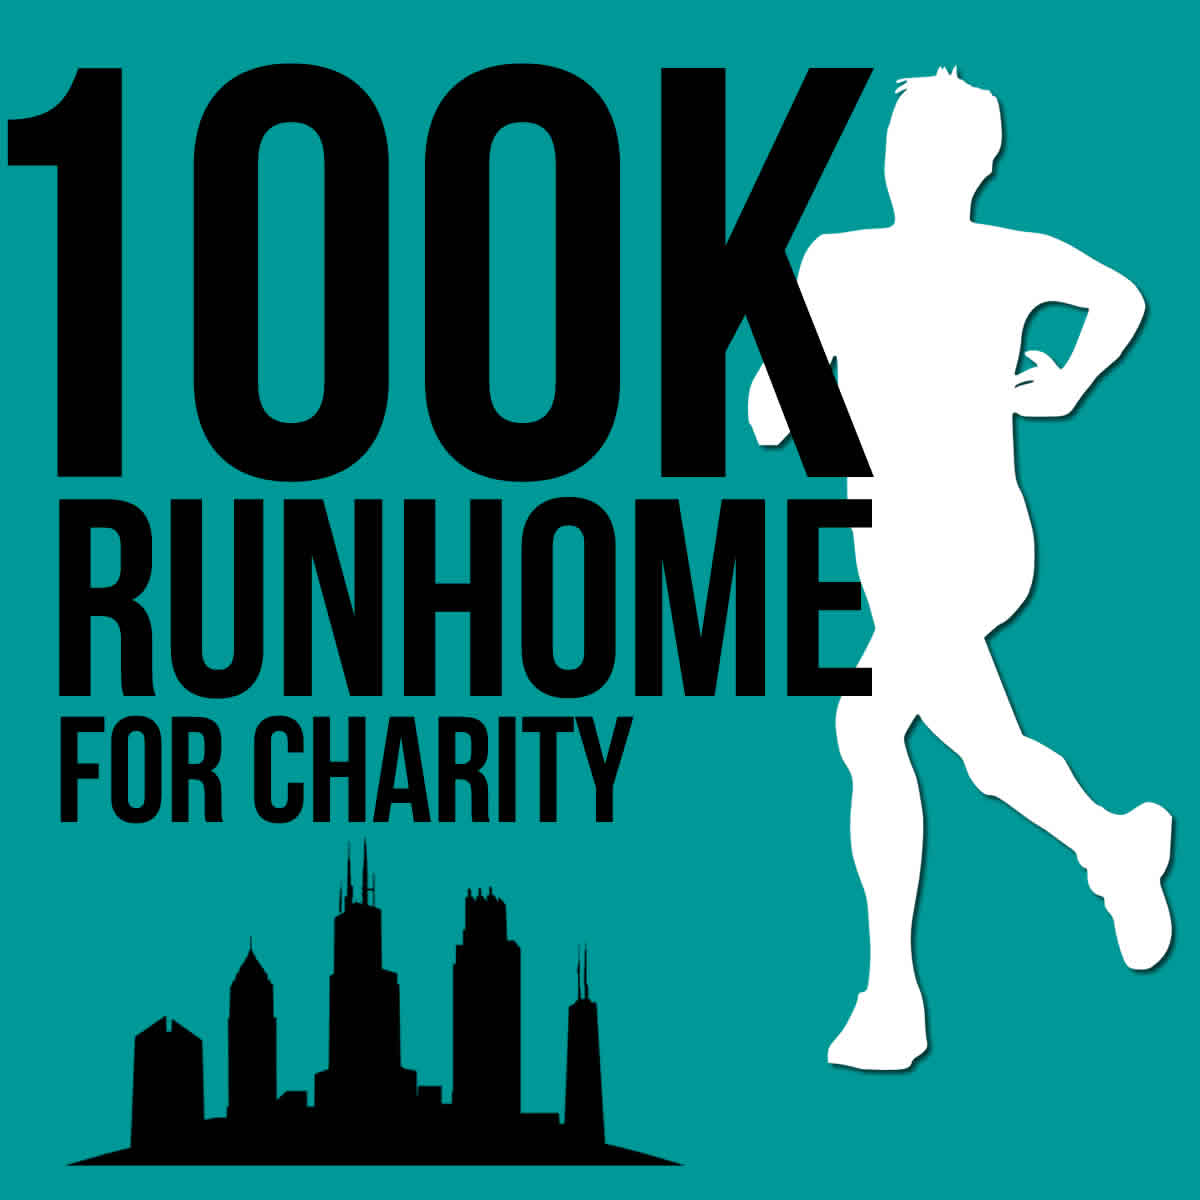 100k Run Home For Charity Photo